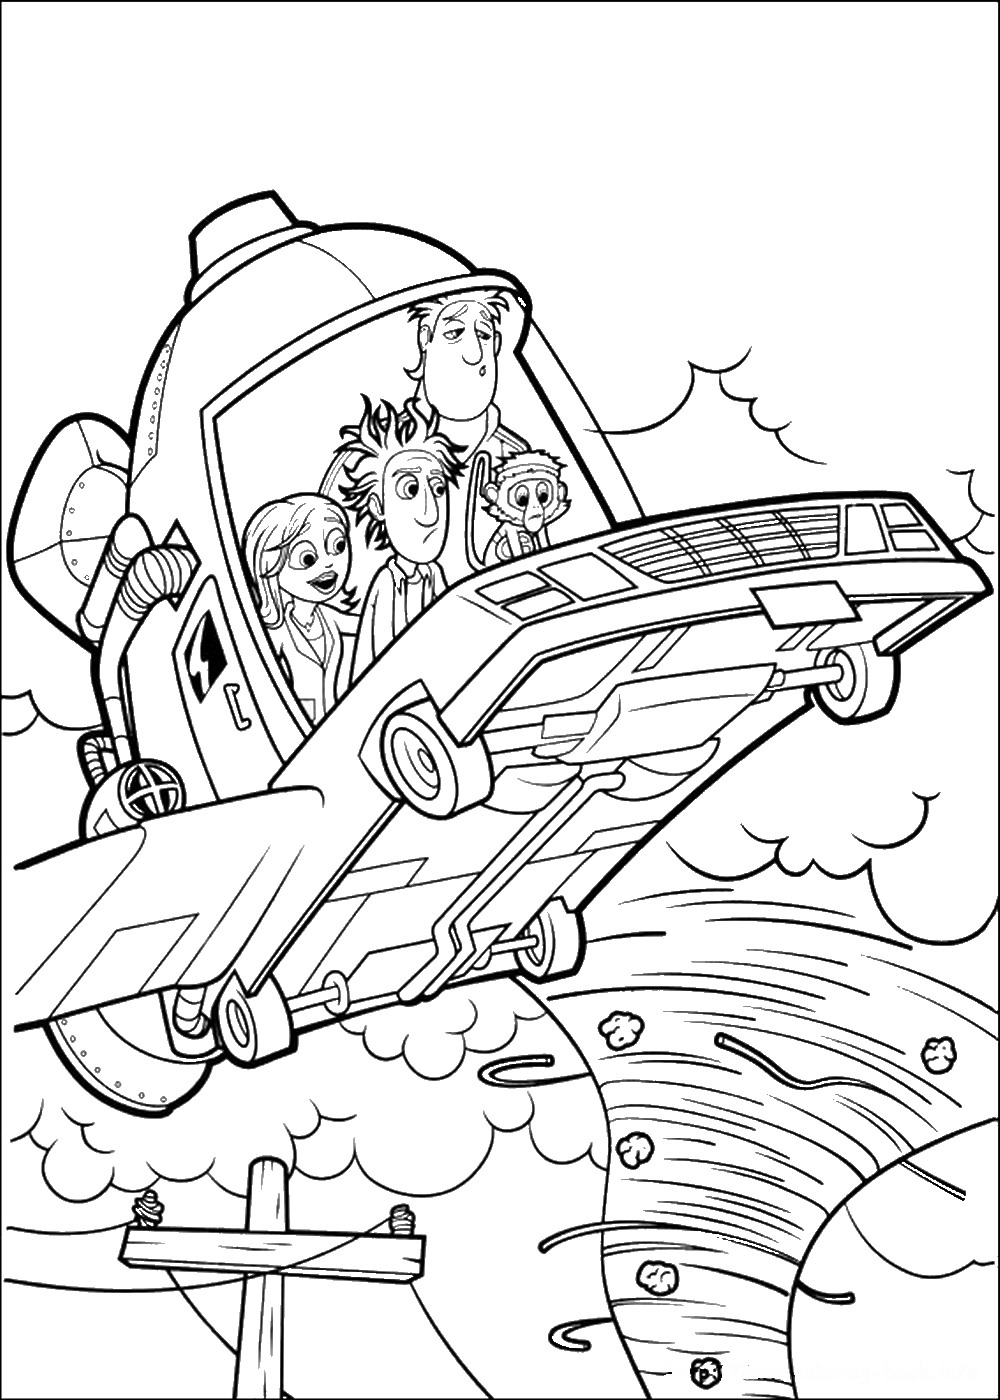 cloudy with a chance of meatballs 2 coloring pages cloudy with a chance of meatballs 2 coloring pages at of meatballs pages chance with 2 a coloring cloudy